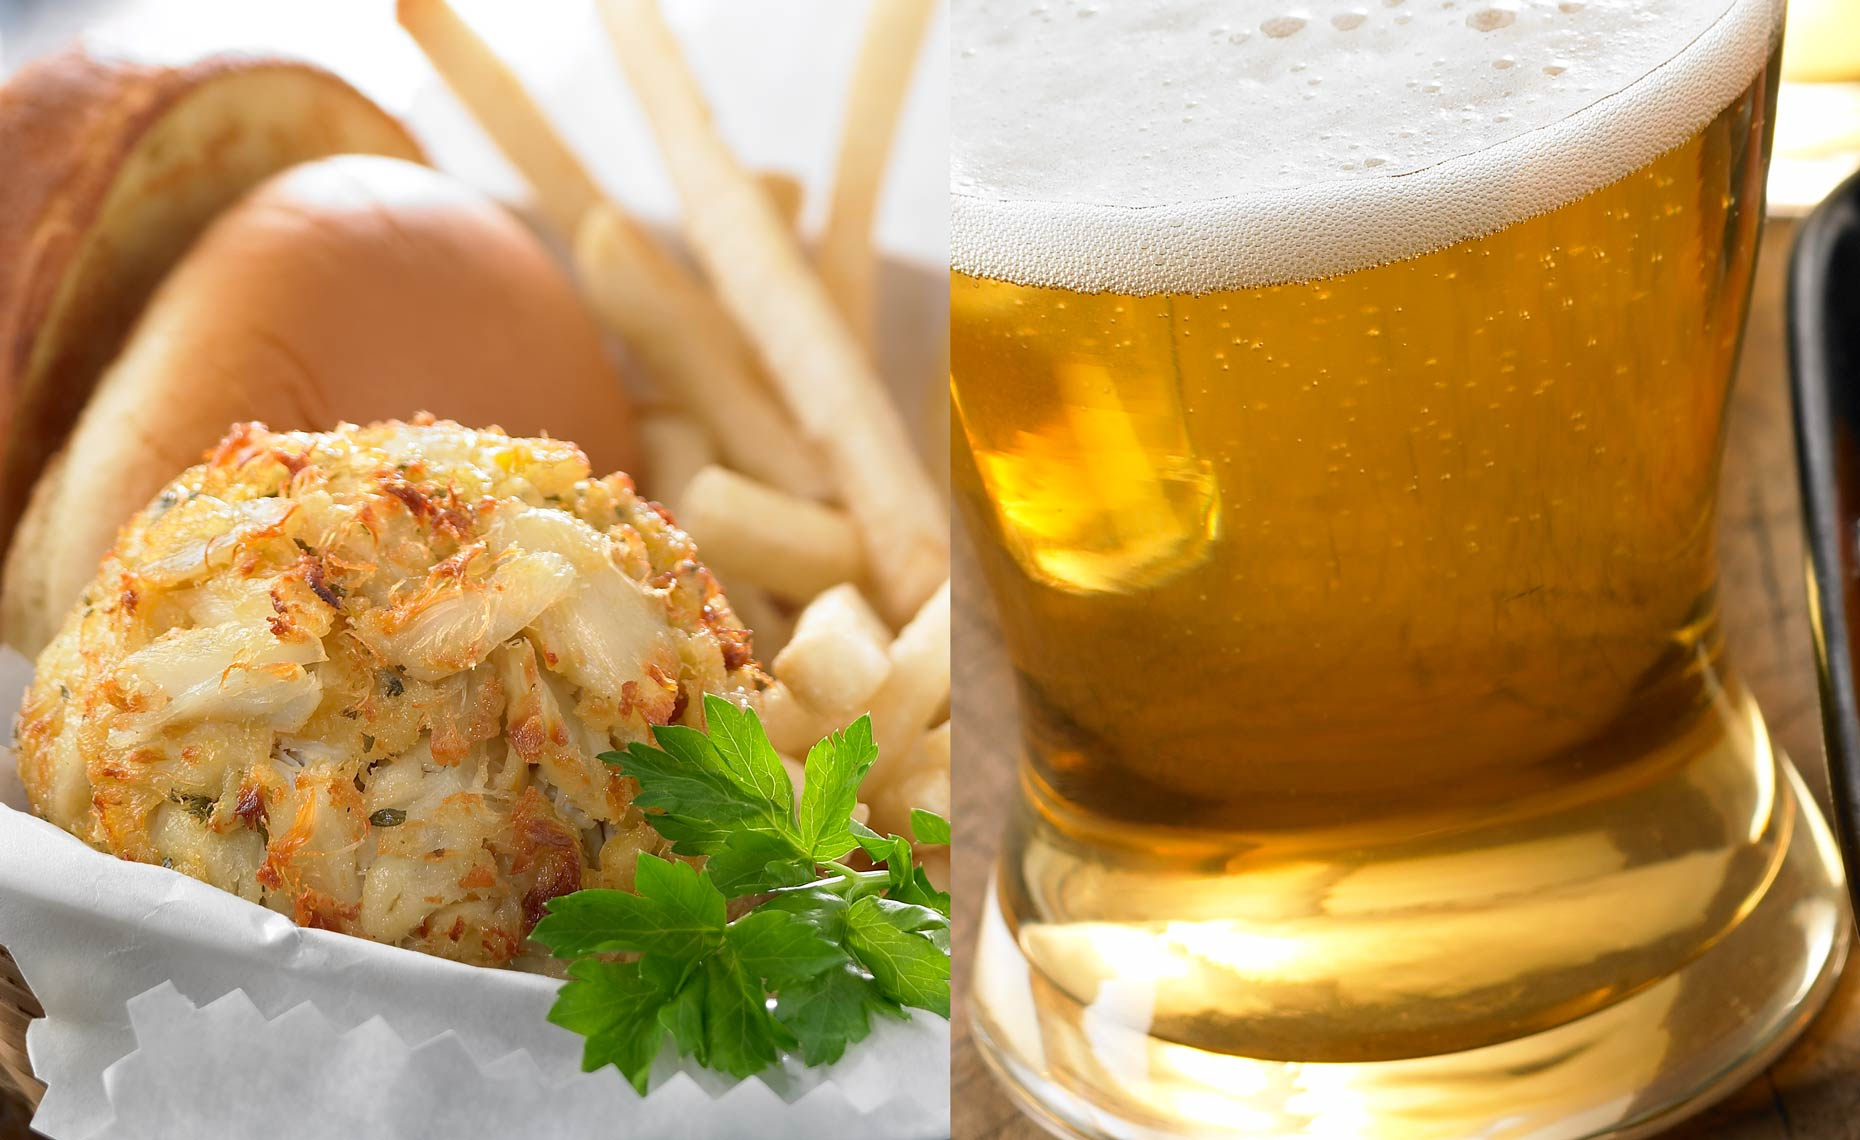 pizza-pasta-bread-photographers-crabcake-beer-10